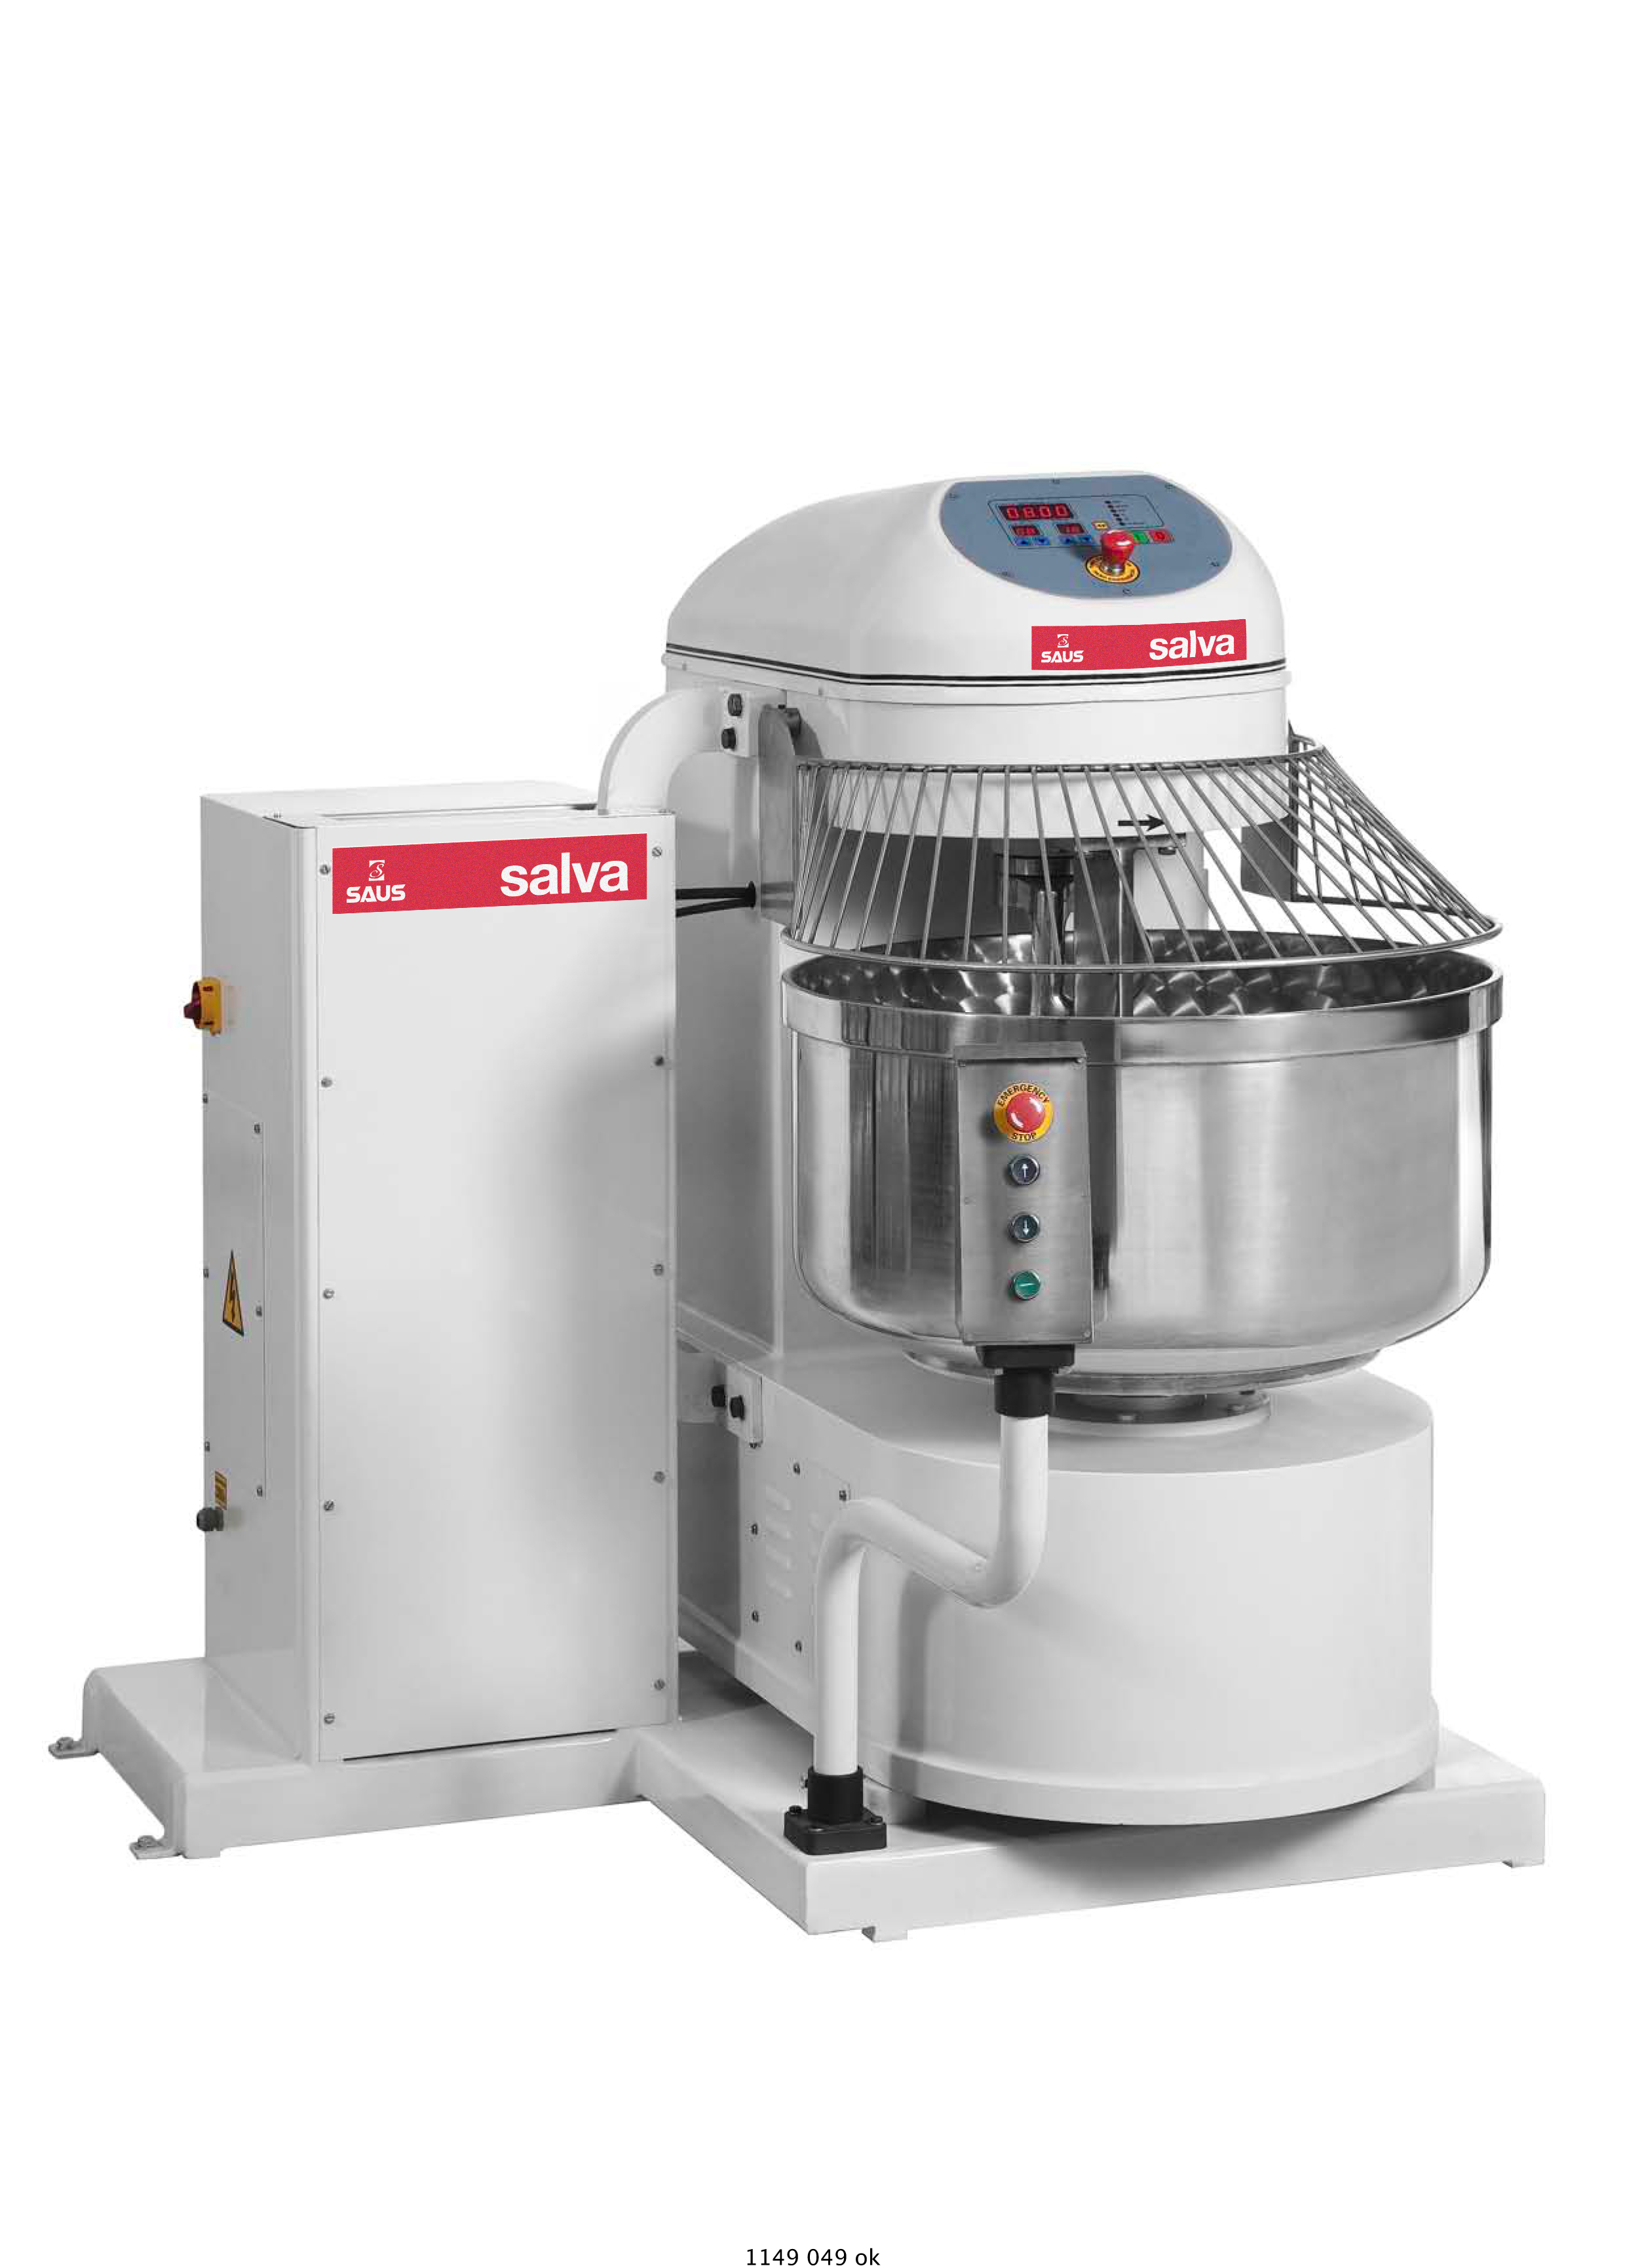 Salva 2 Arm Mixer